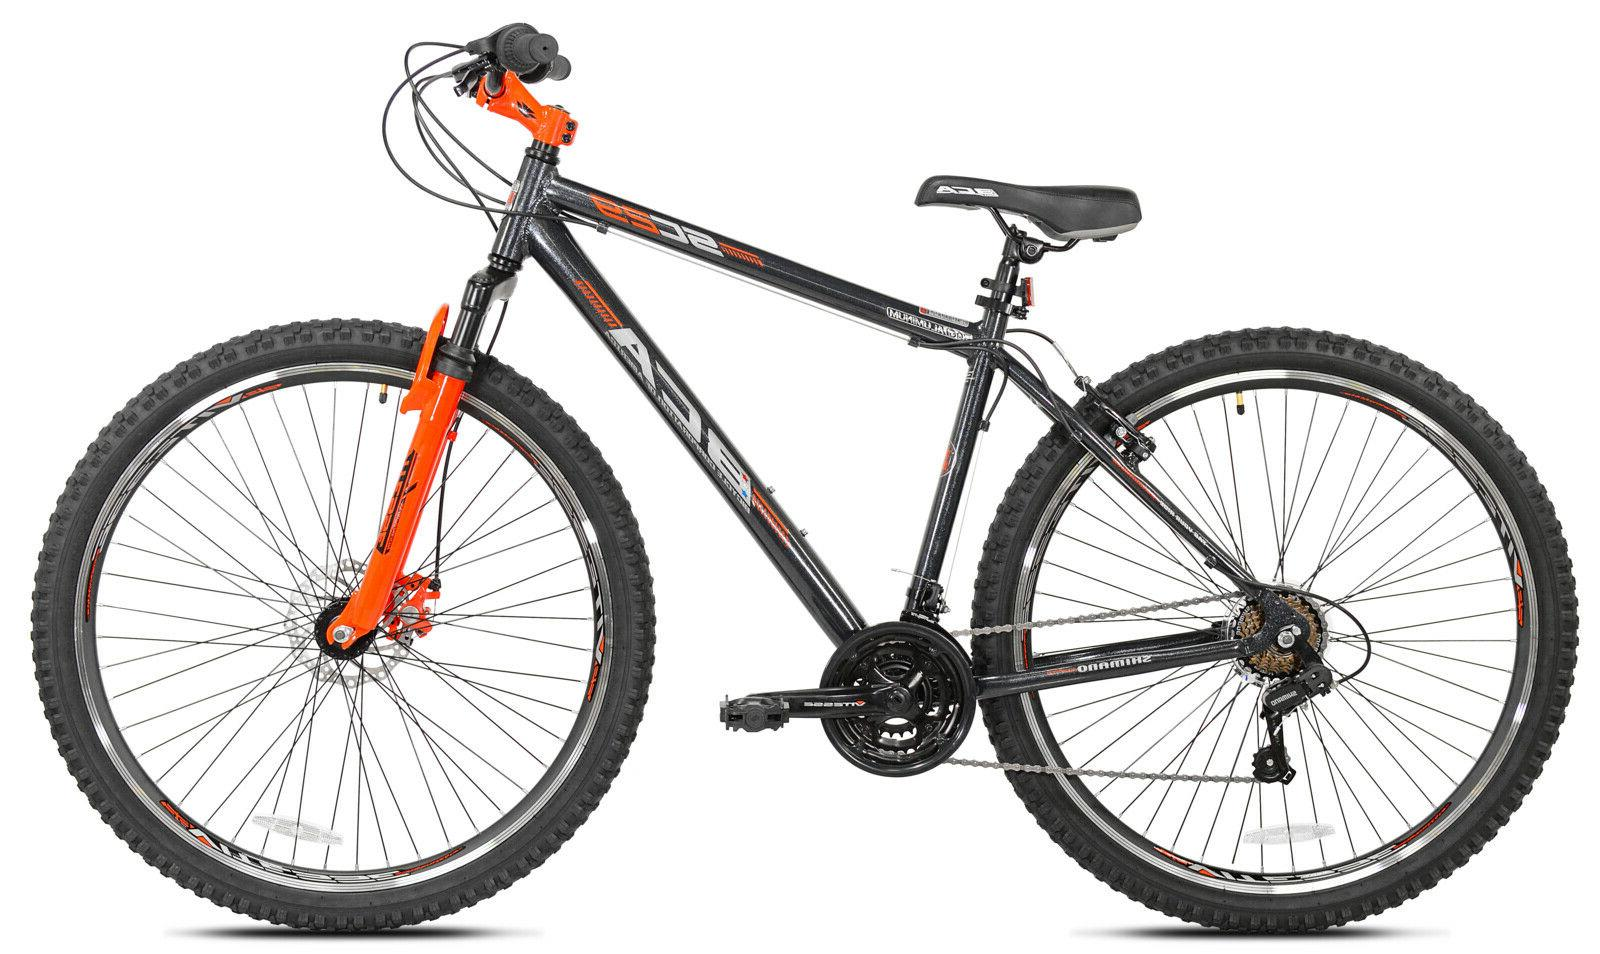 Men's Aluminum Speed Bicycle, Gray/Orange